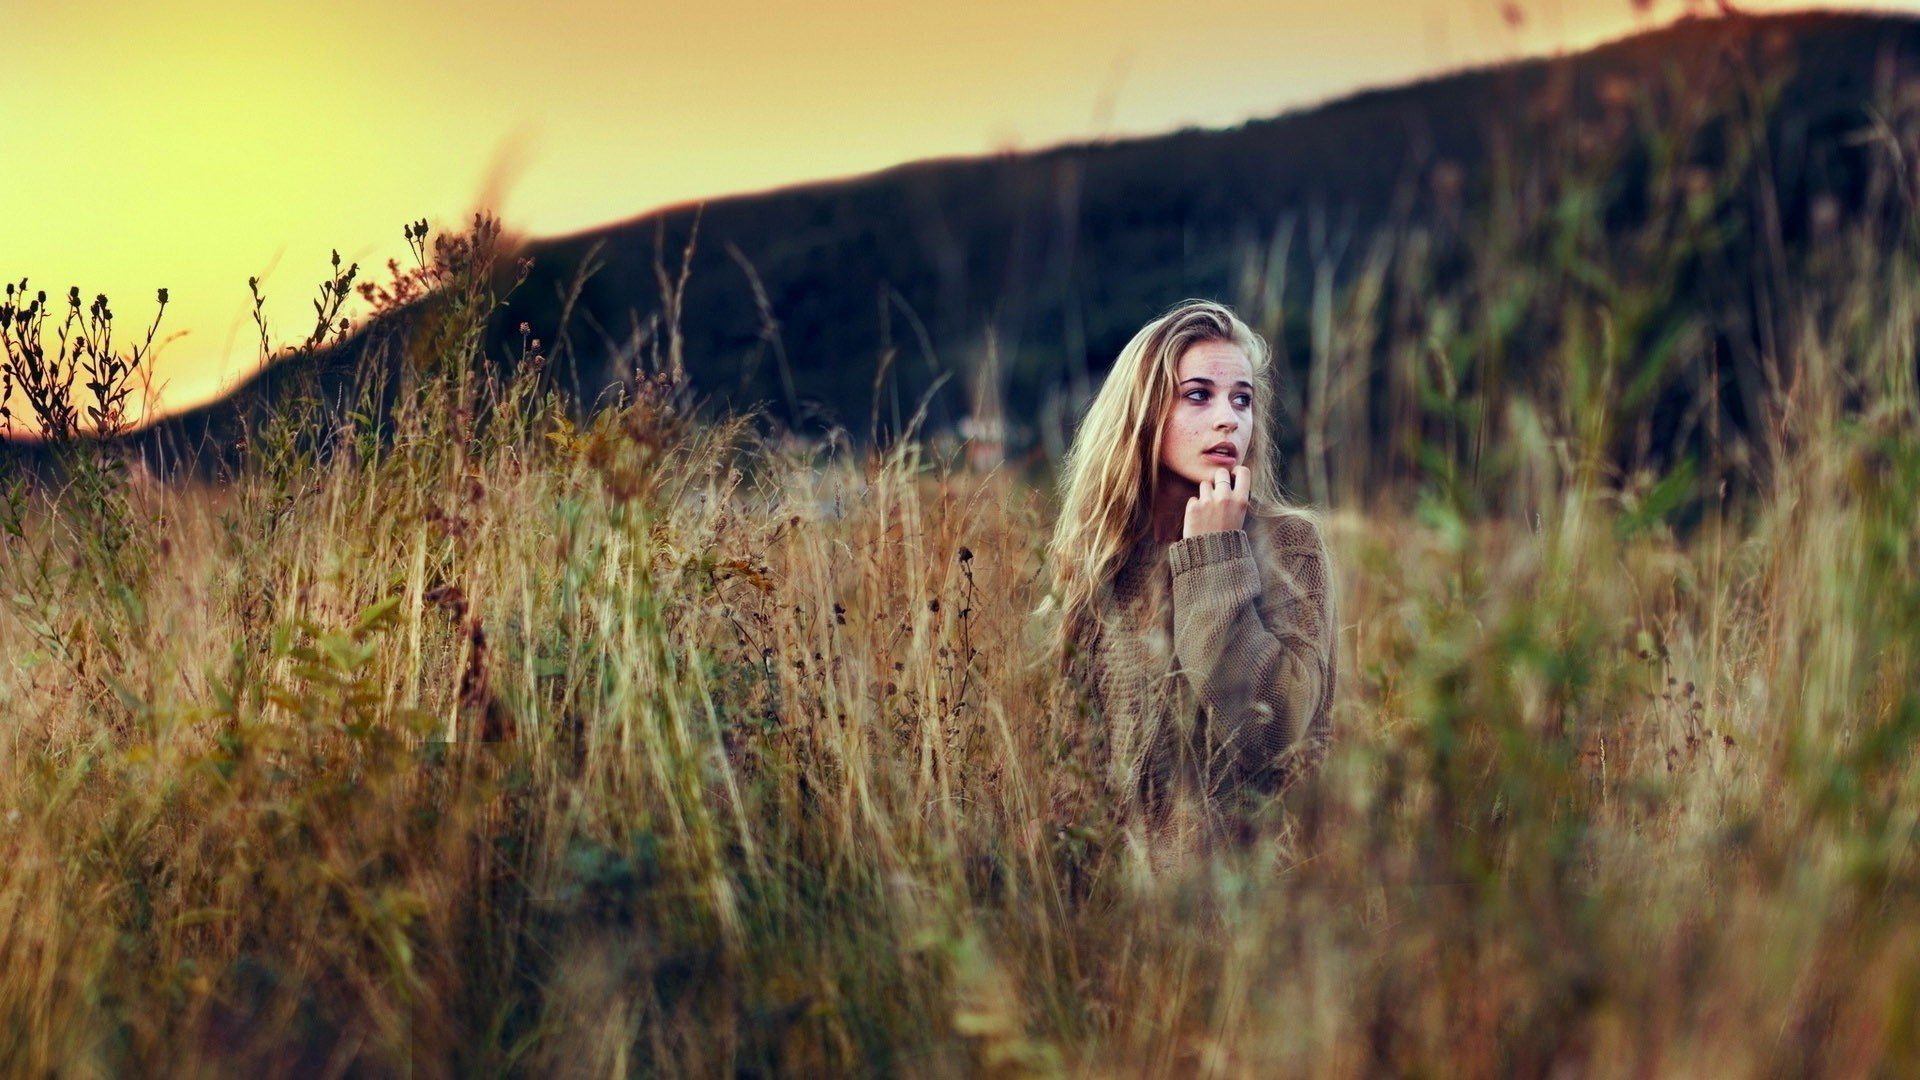 blonde girl field grass wallpaper 1920x1080 18902